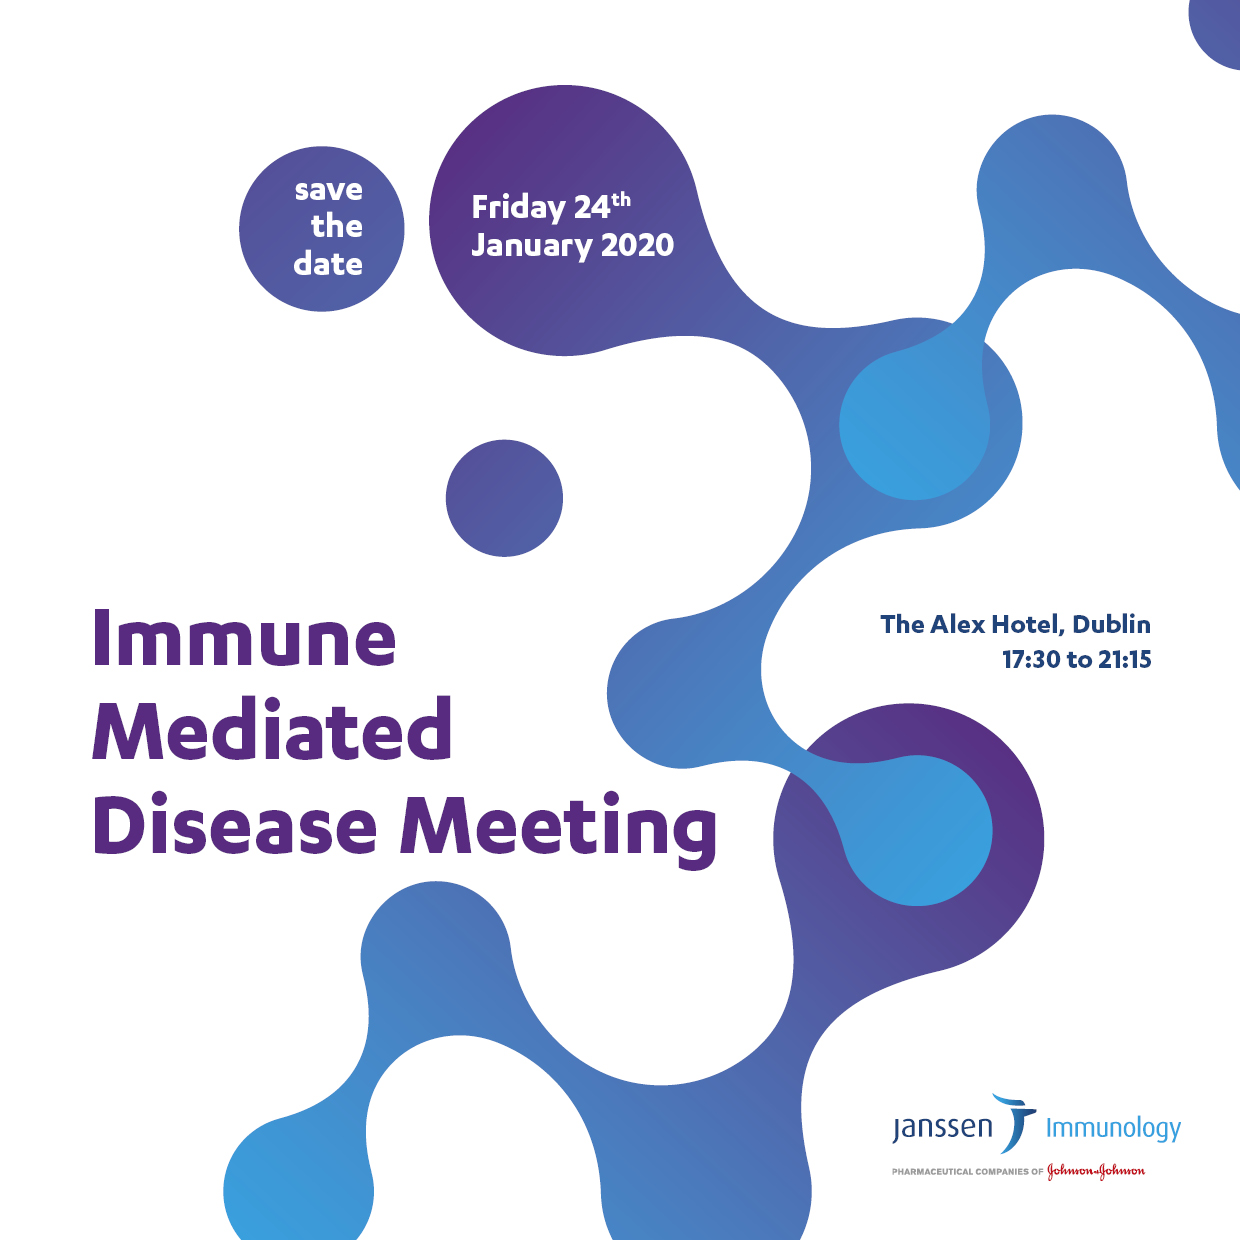 Immune Mediated Disease Meeting